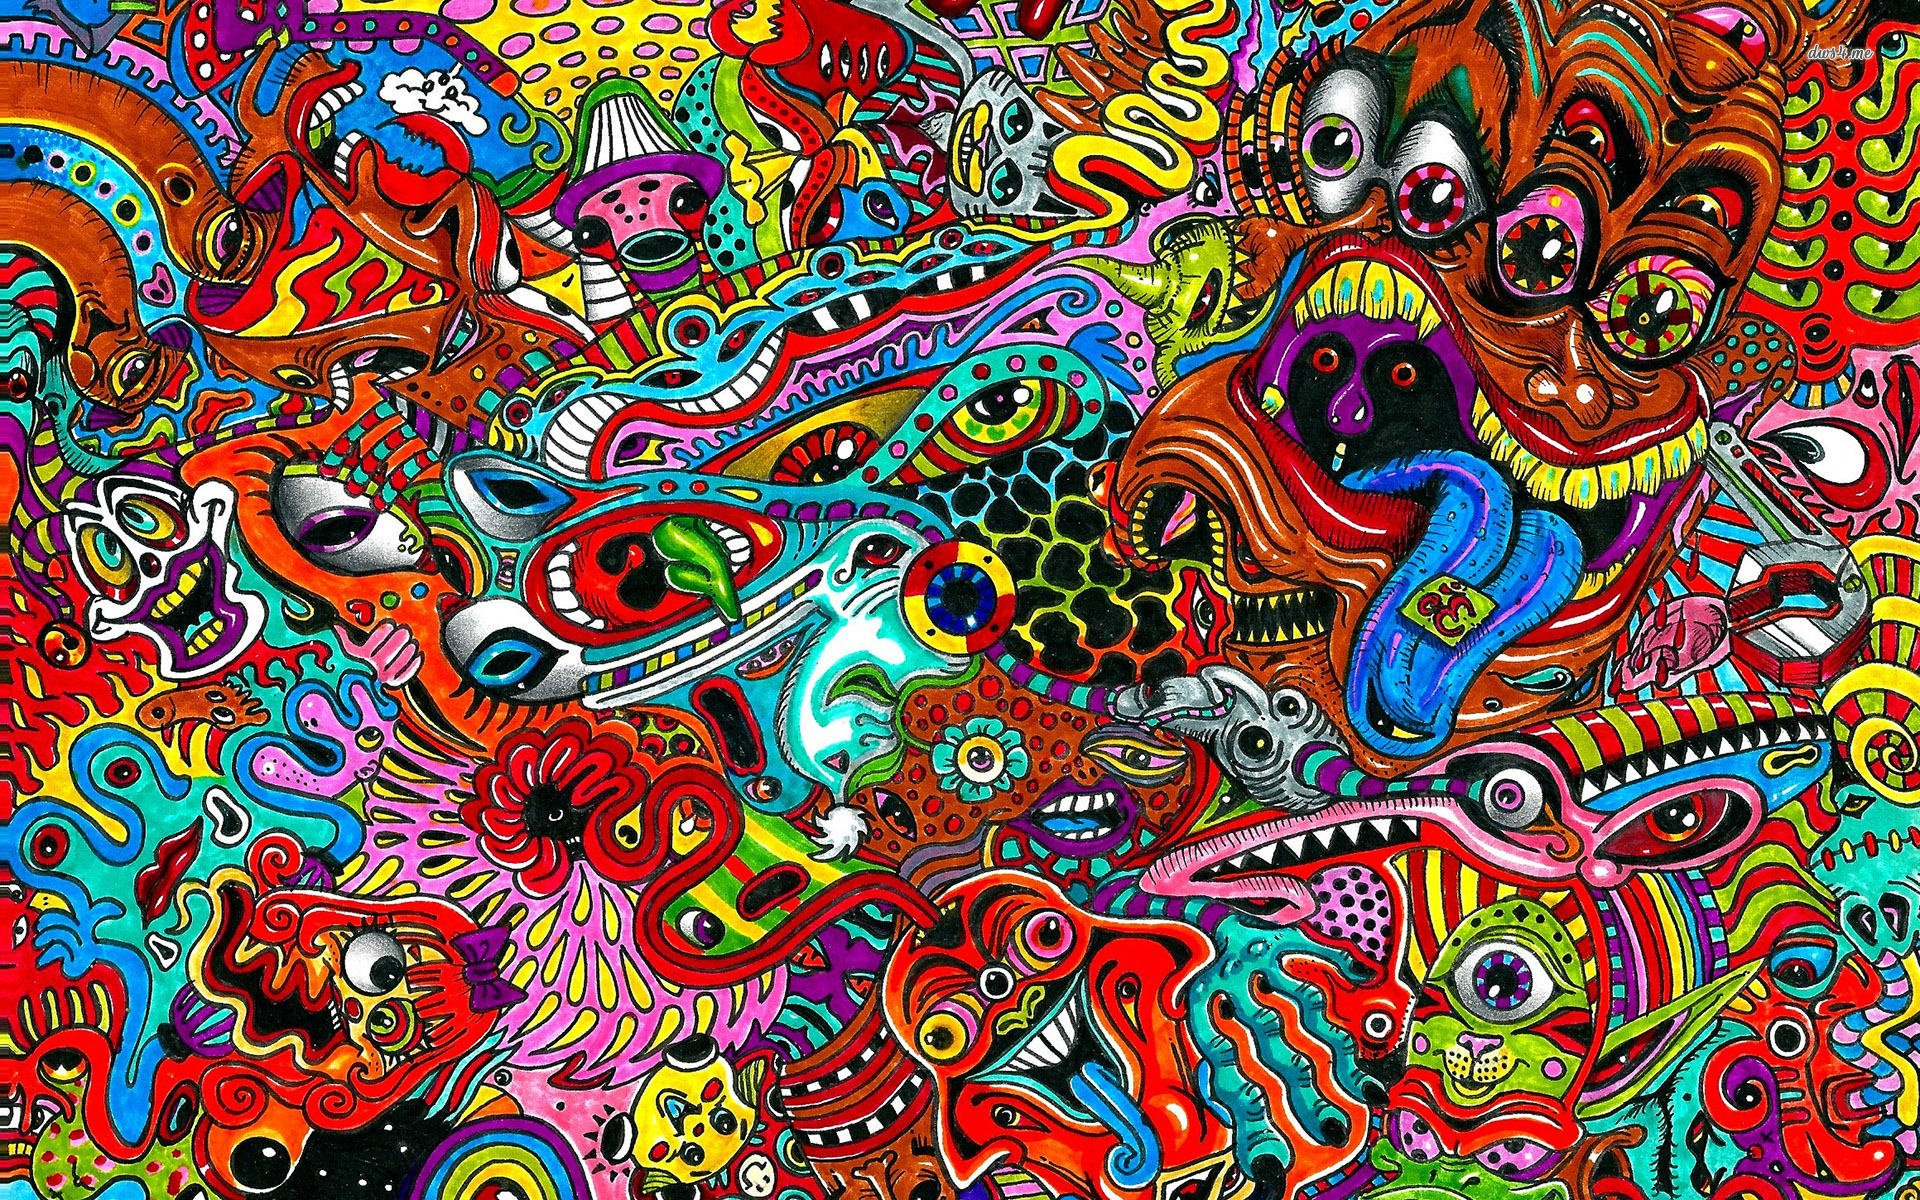 18 Psychedelic Backgrounds Wallpapers Images 1920x1200